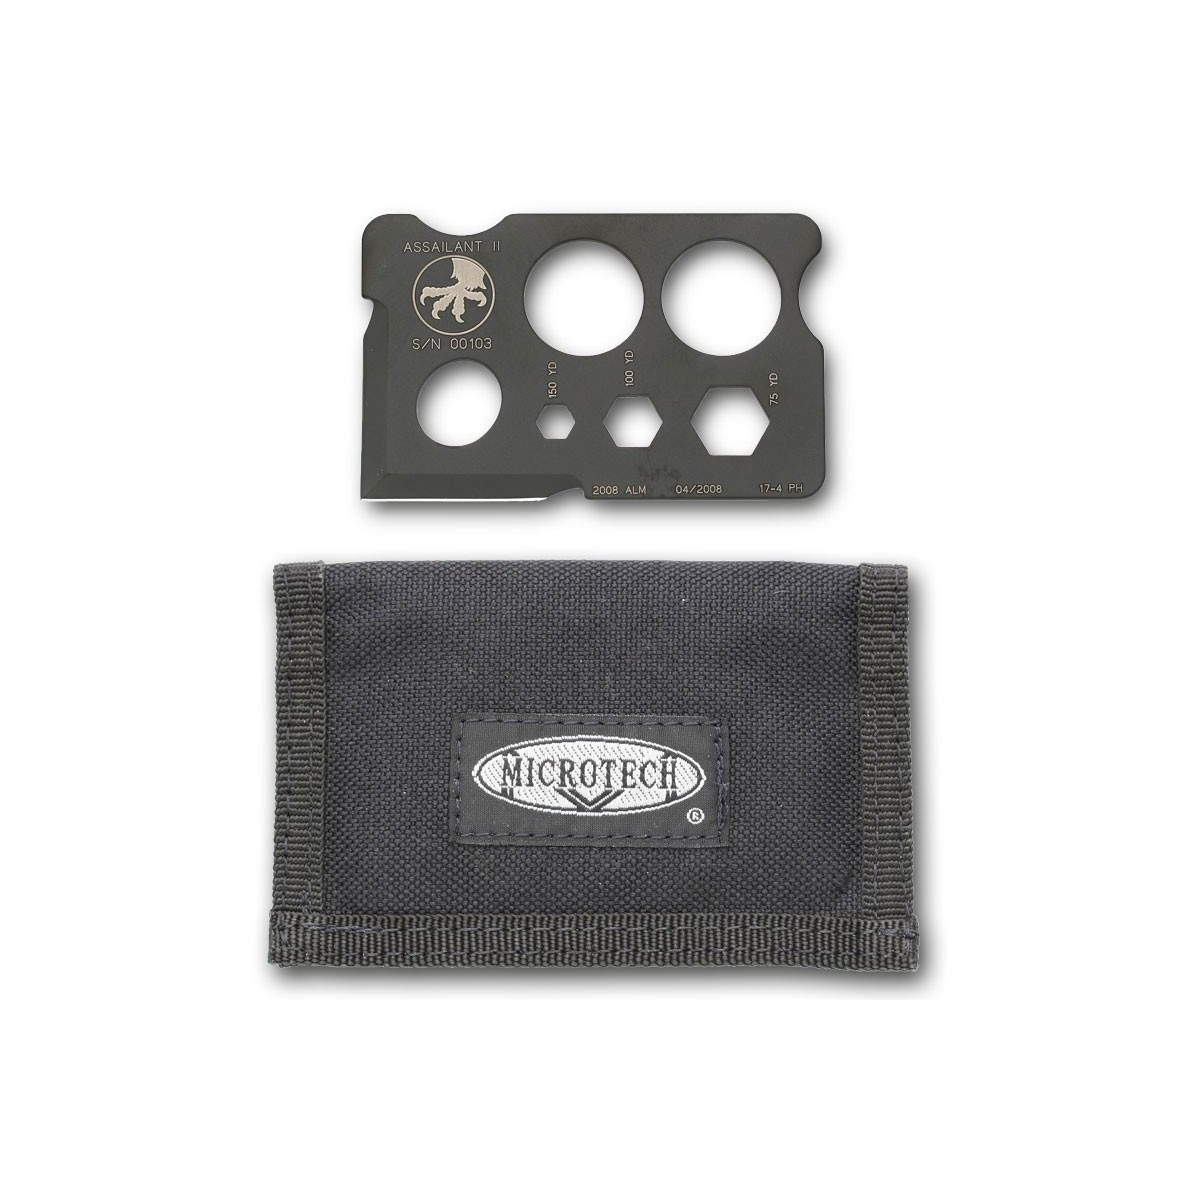 "Microtech Assailant II Credit Card Style Knife with Nylon Wallet 3.4"" x 2.1"""